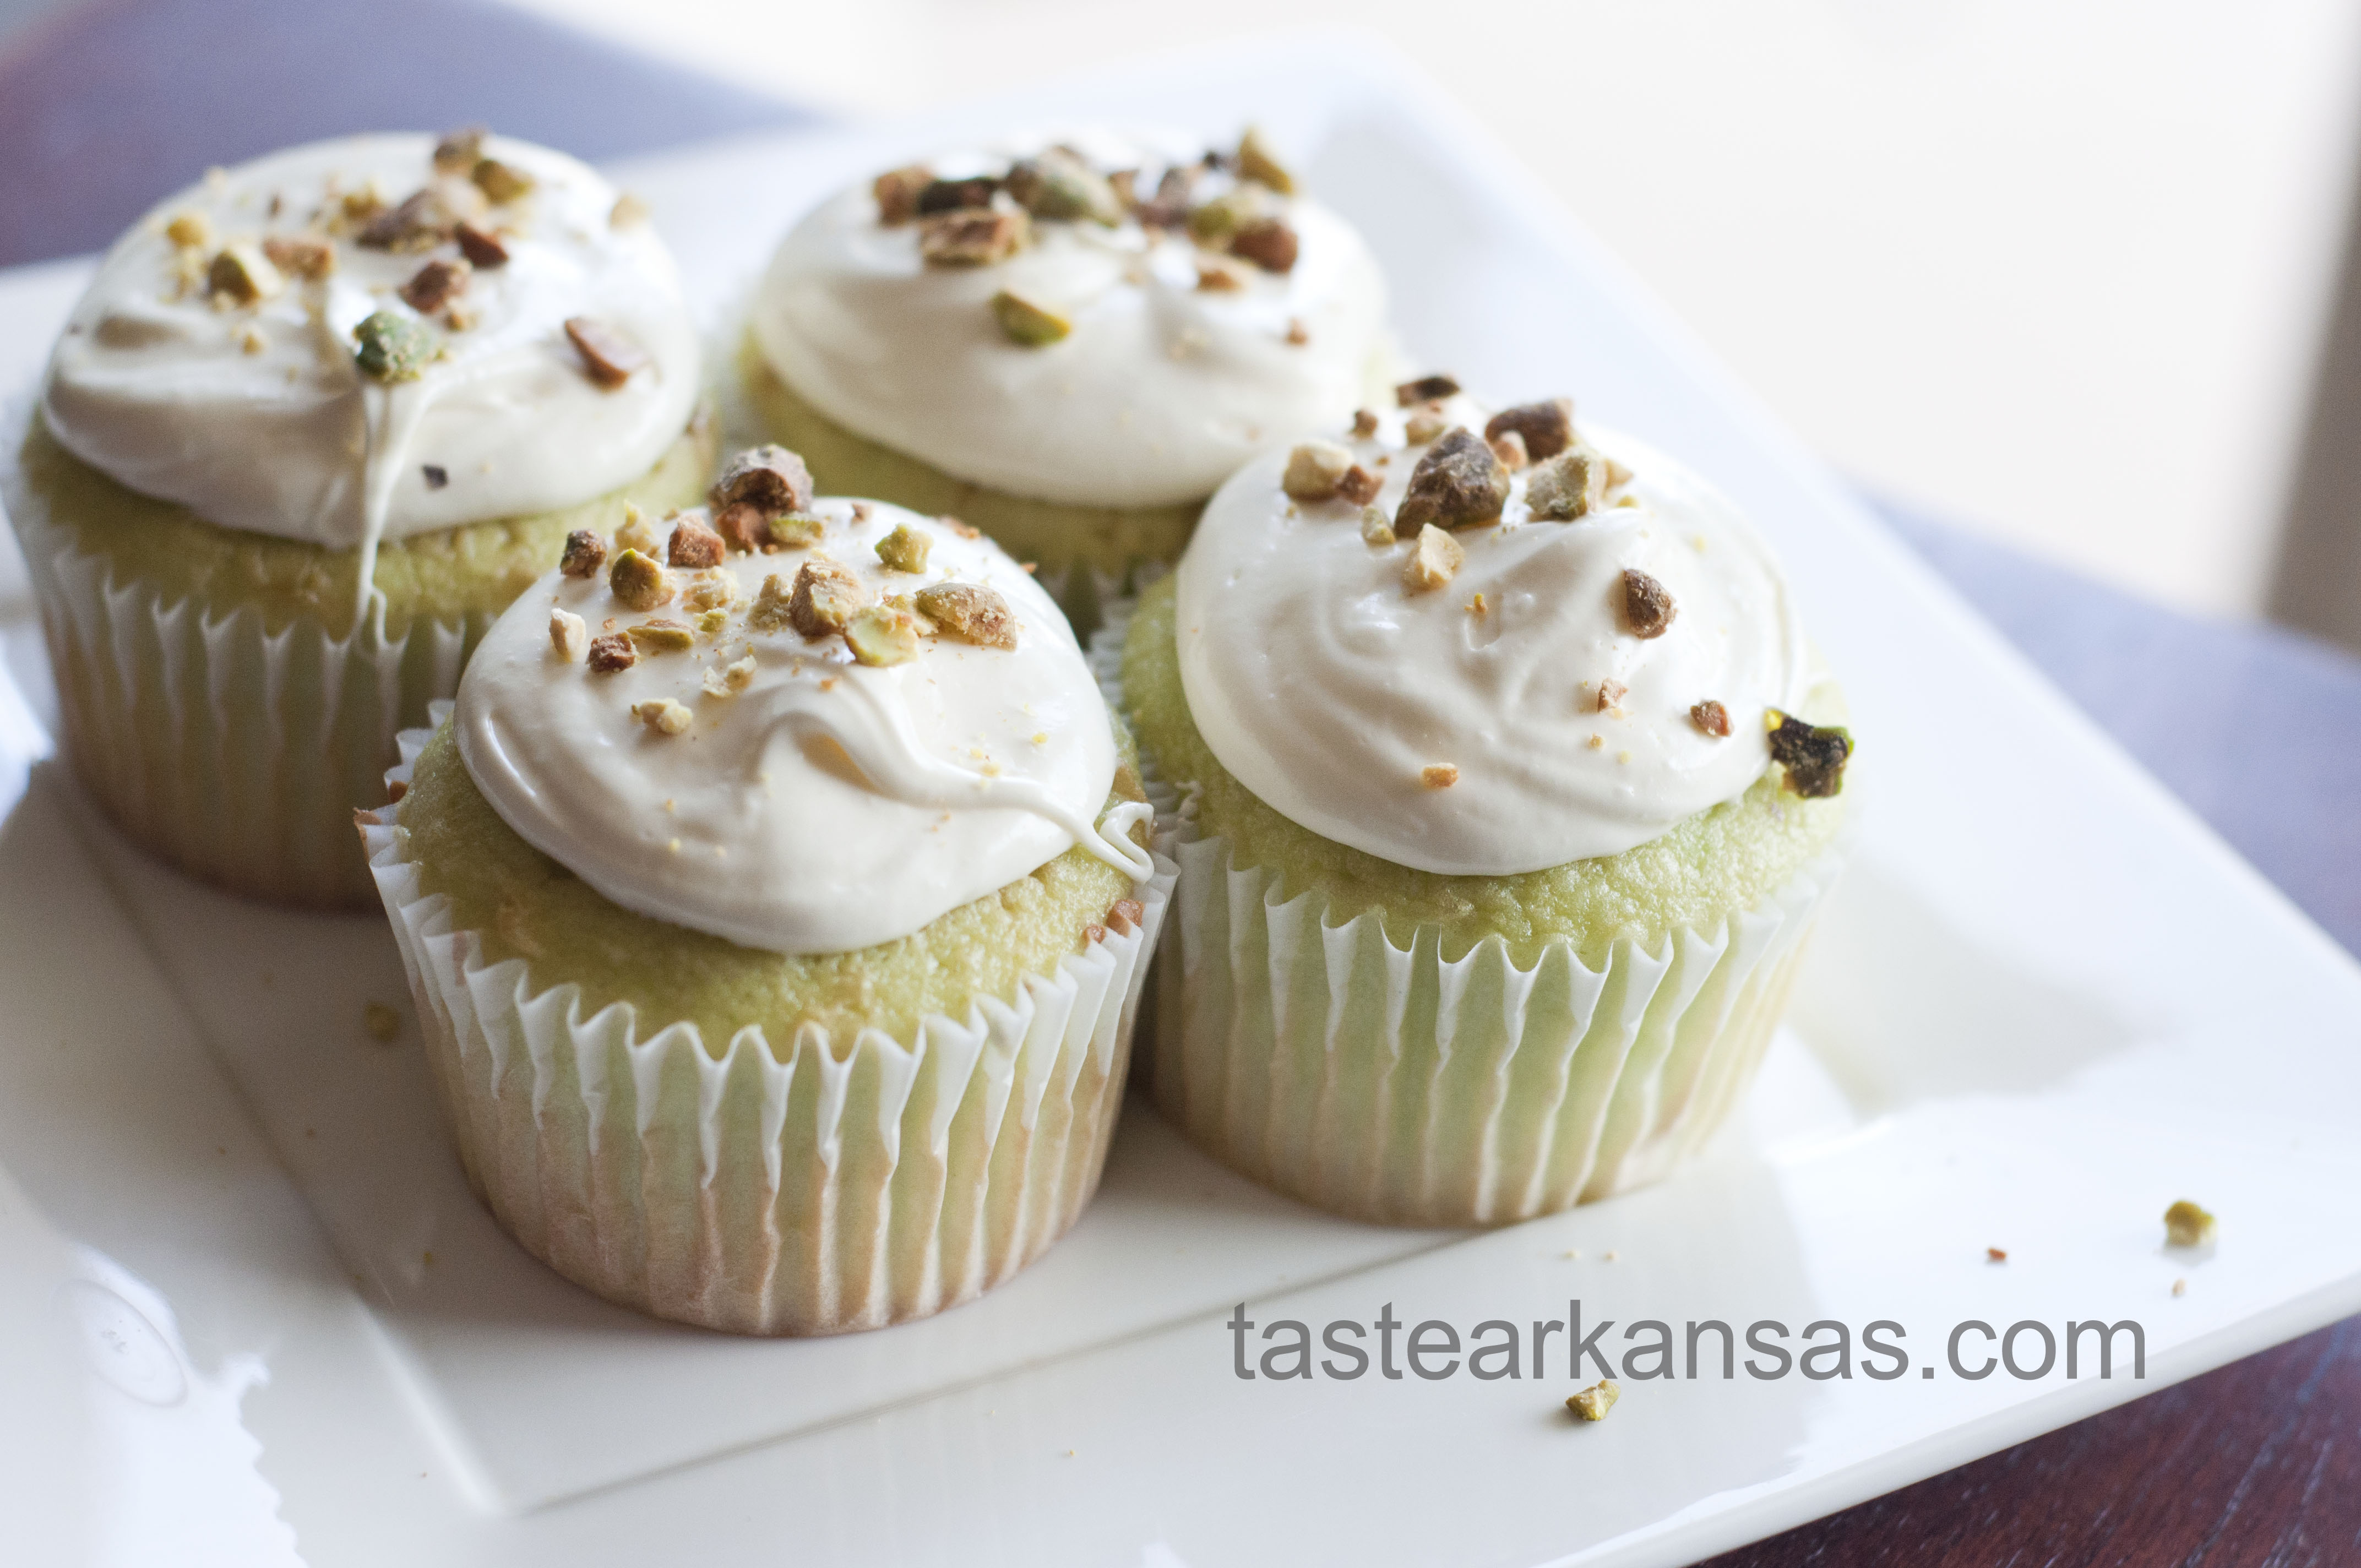 This image is of St. Patrick's Day Pistachio Cupcakes on a white plate